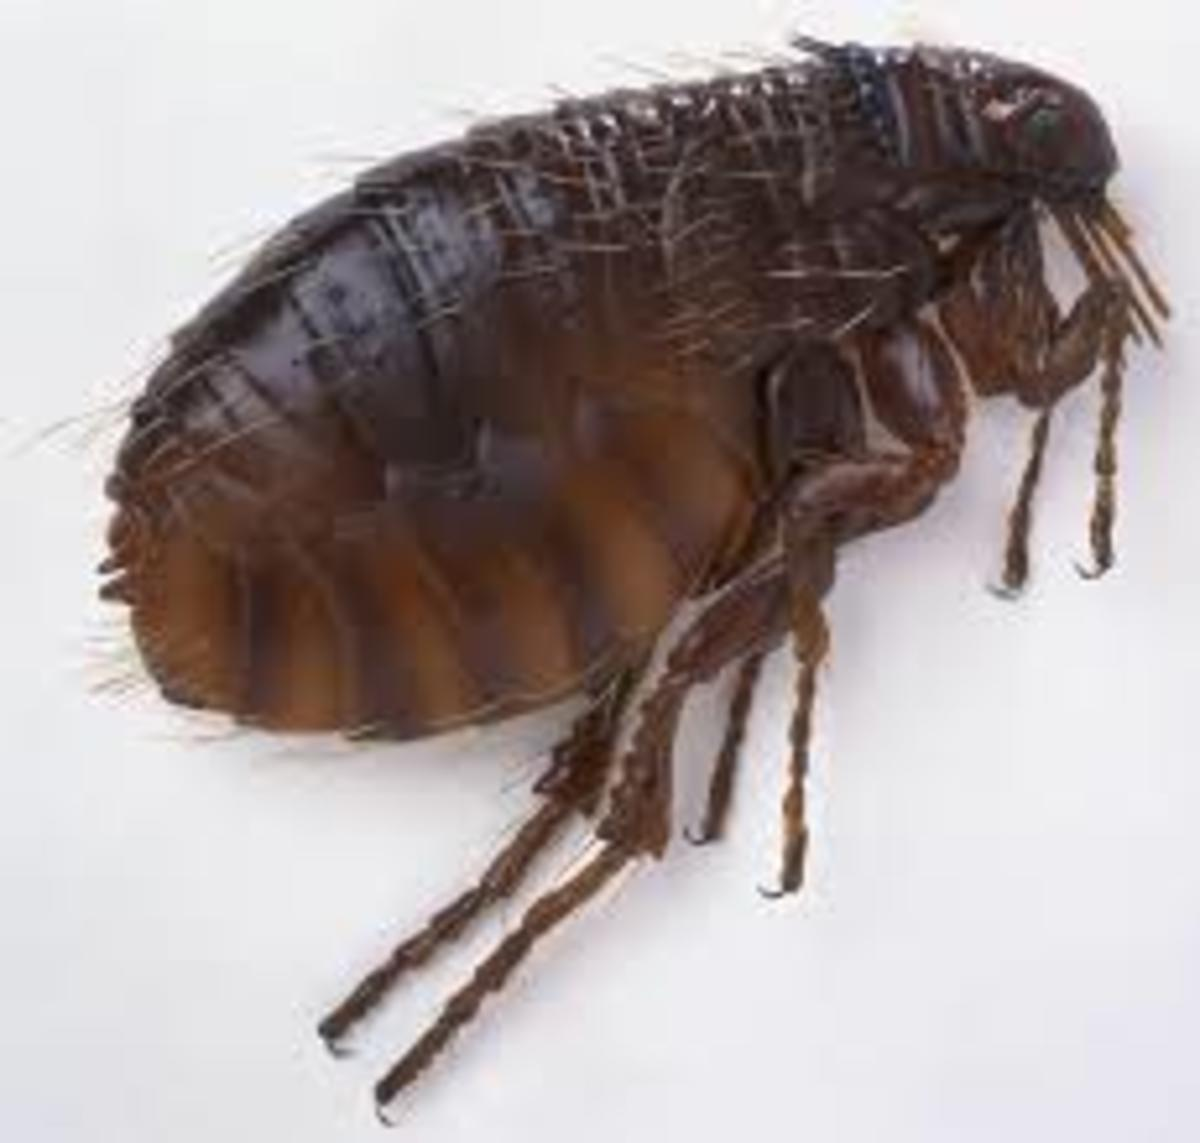 Photo of a cat flea